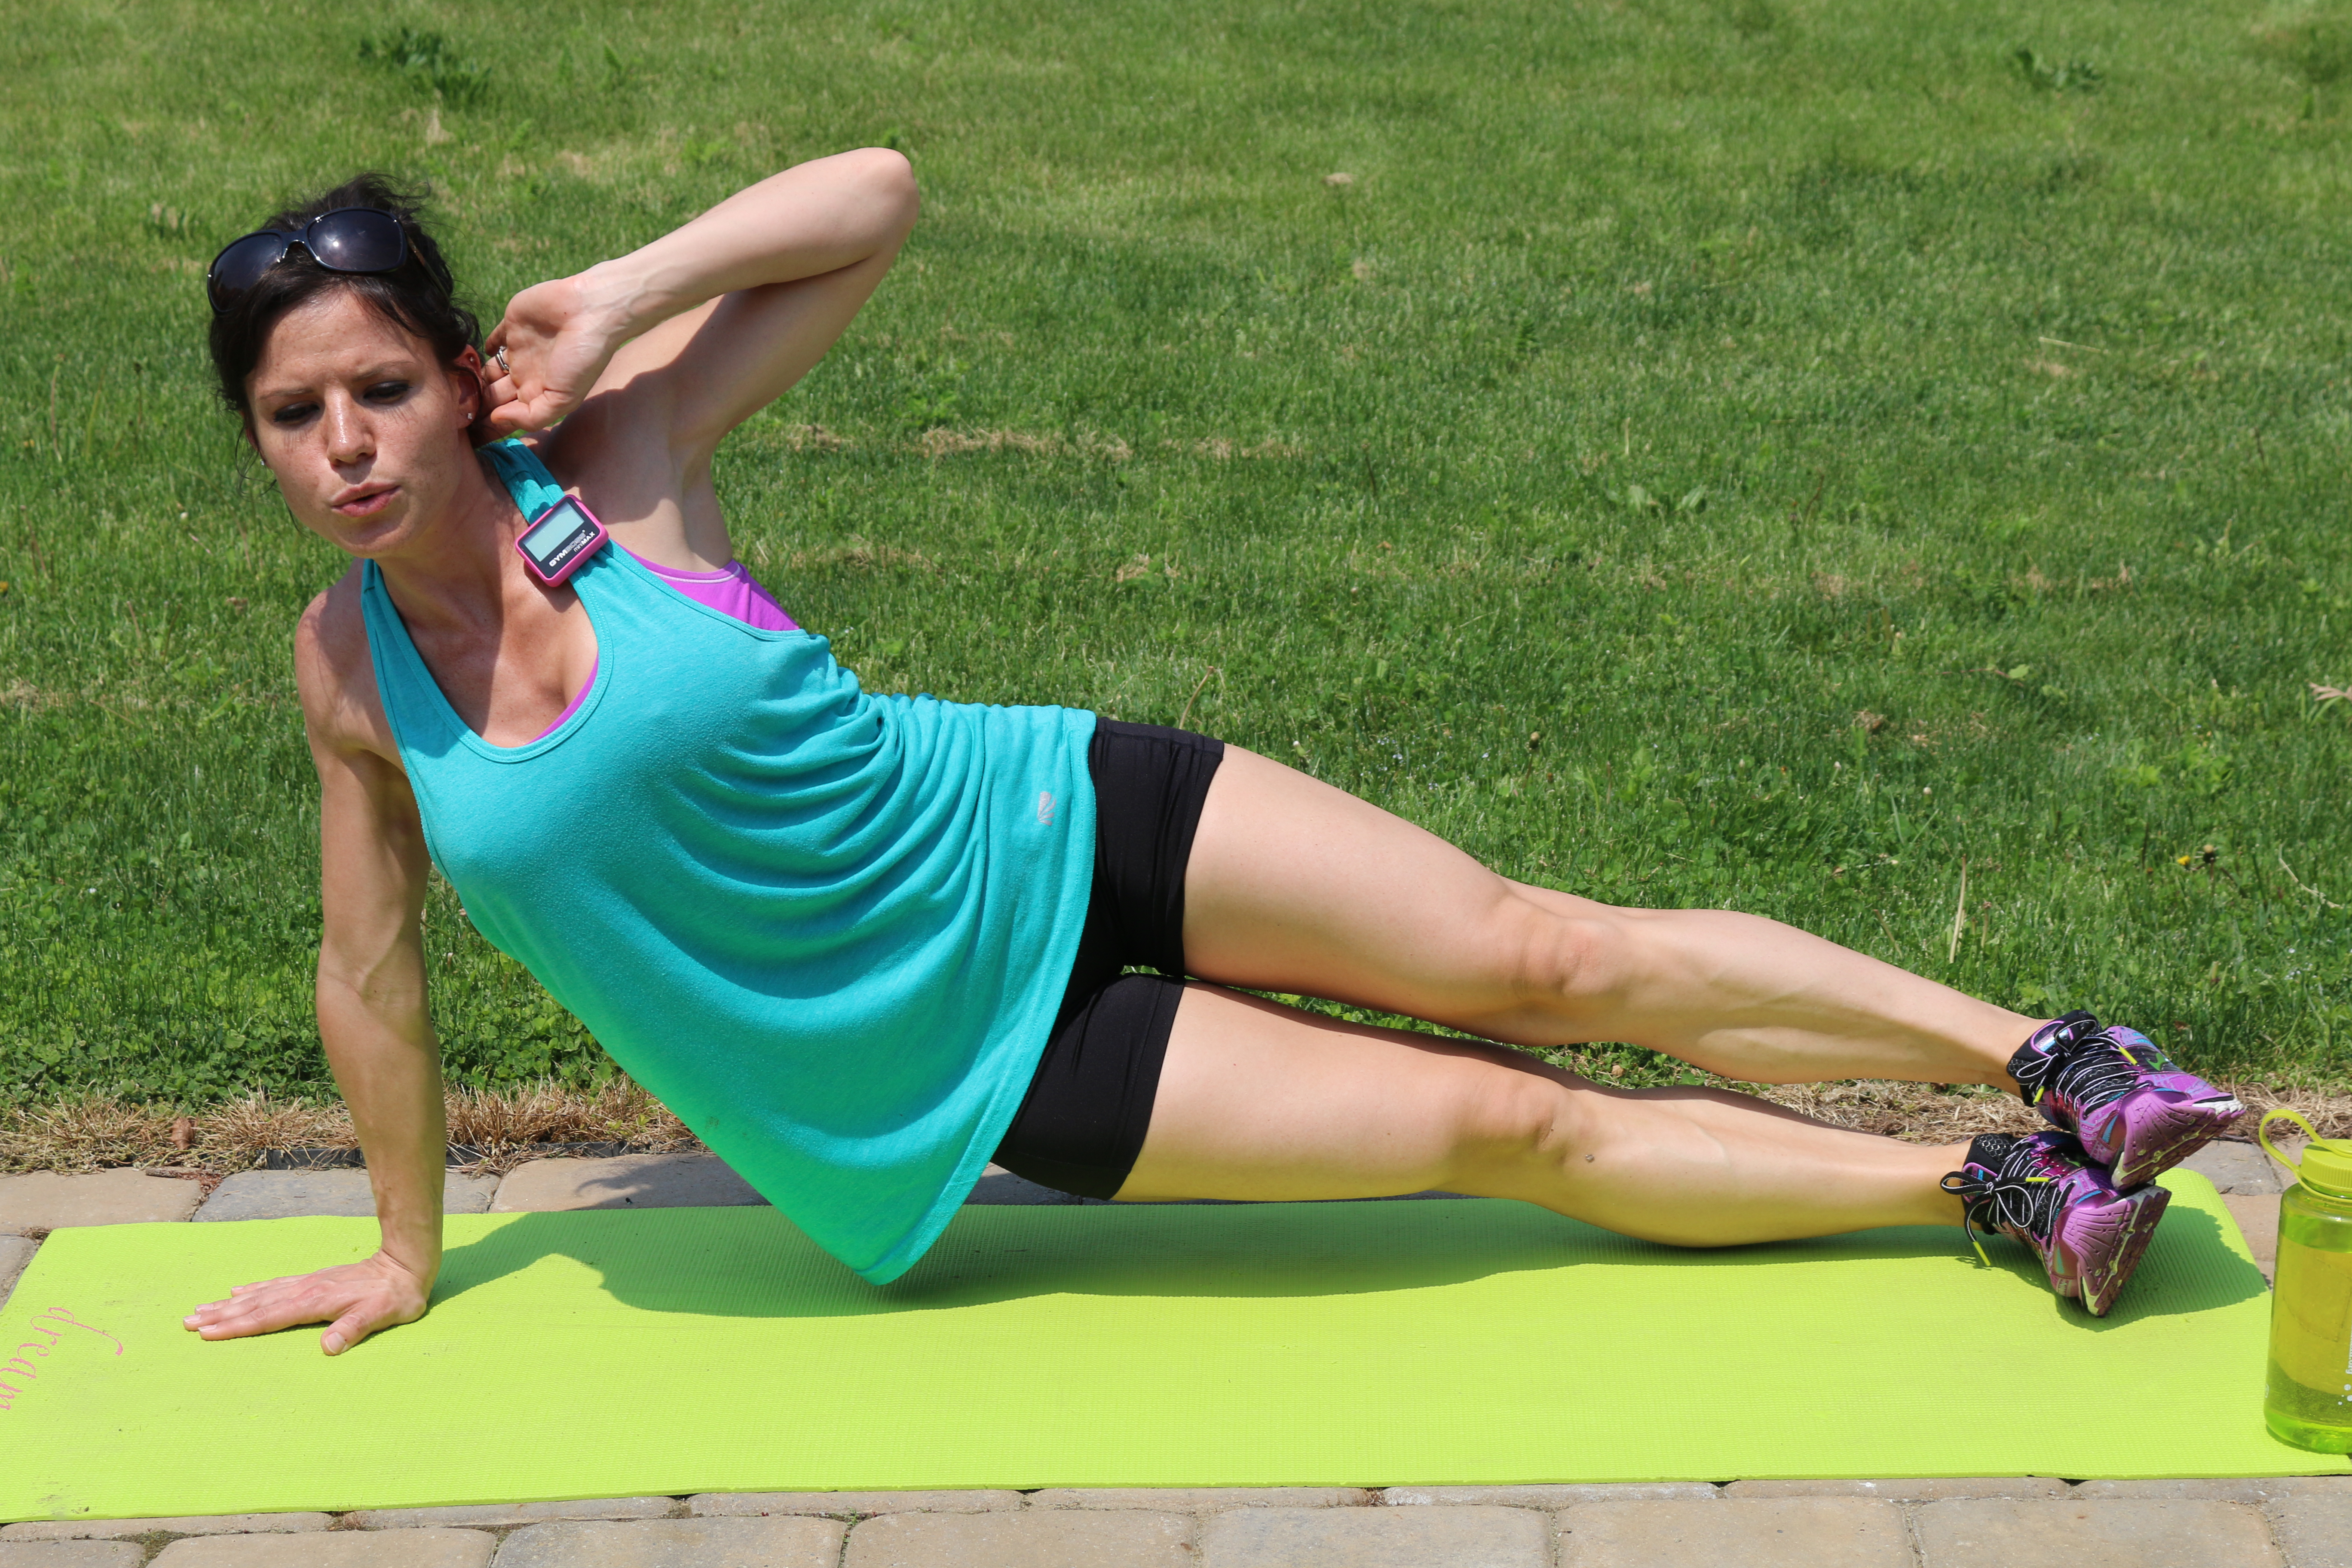 Side Plank Hip Drop: Part 2 Drop your hips toward the ground. Immediately press back up to lift the hips high.